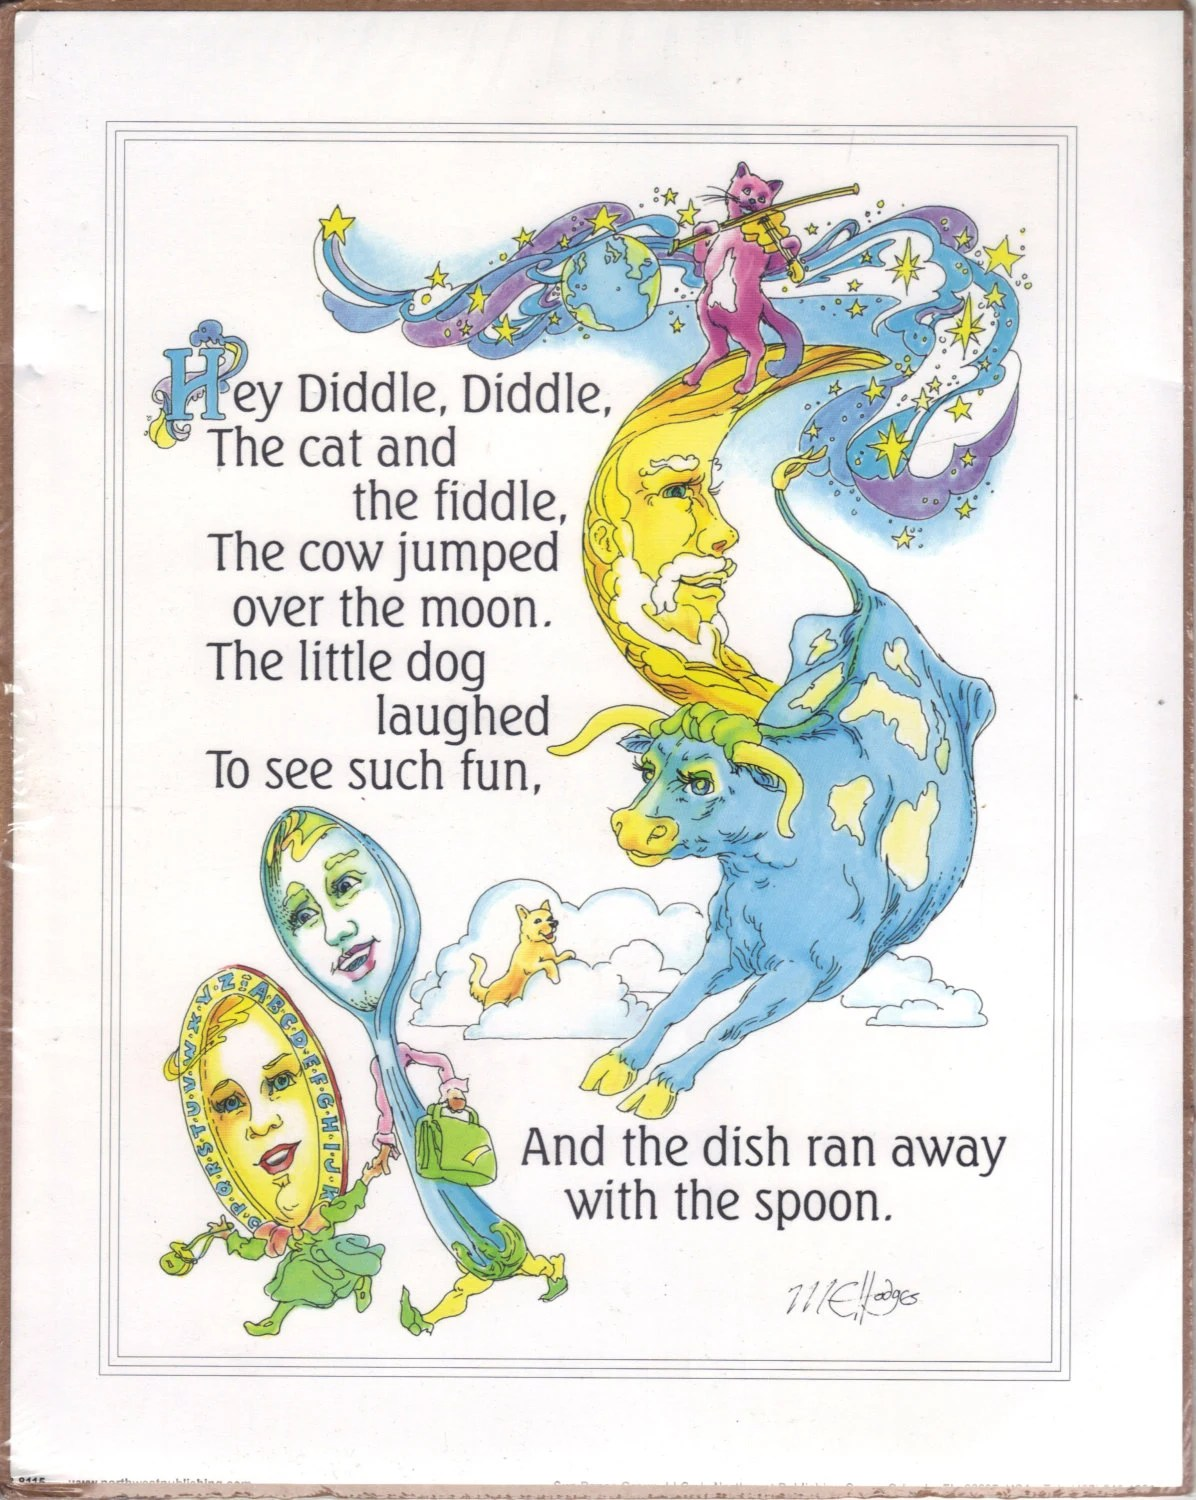 Hey Diddle Diddle Small Poster Of Nursery Rhyme By